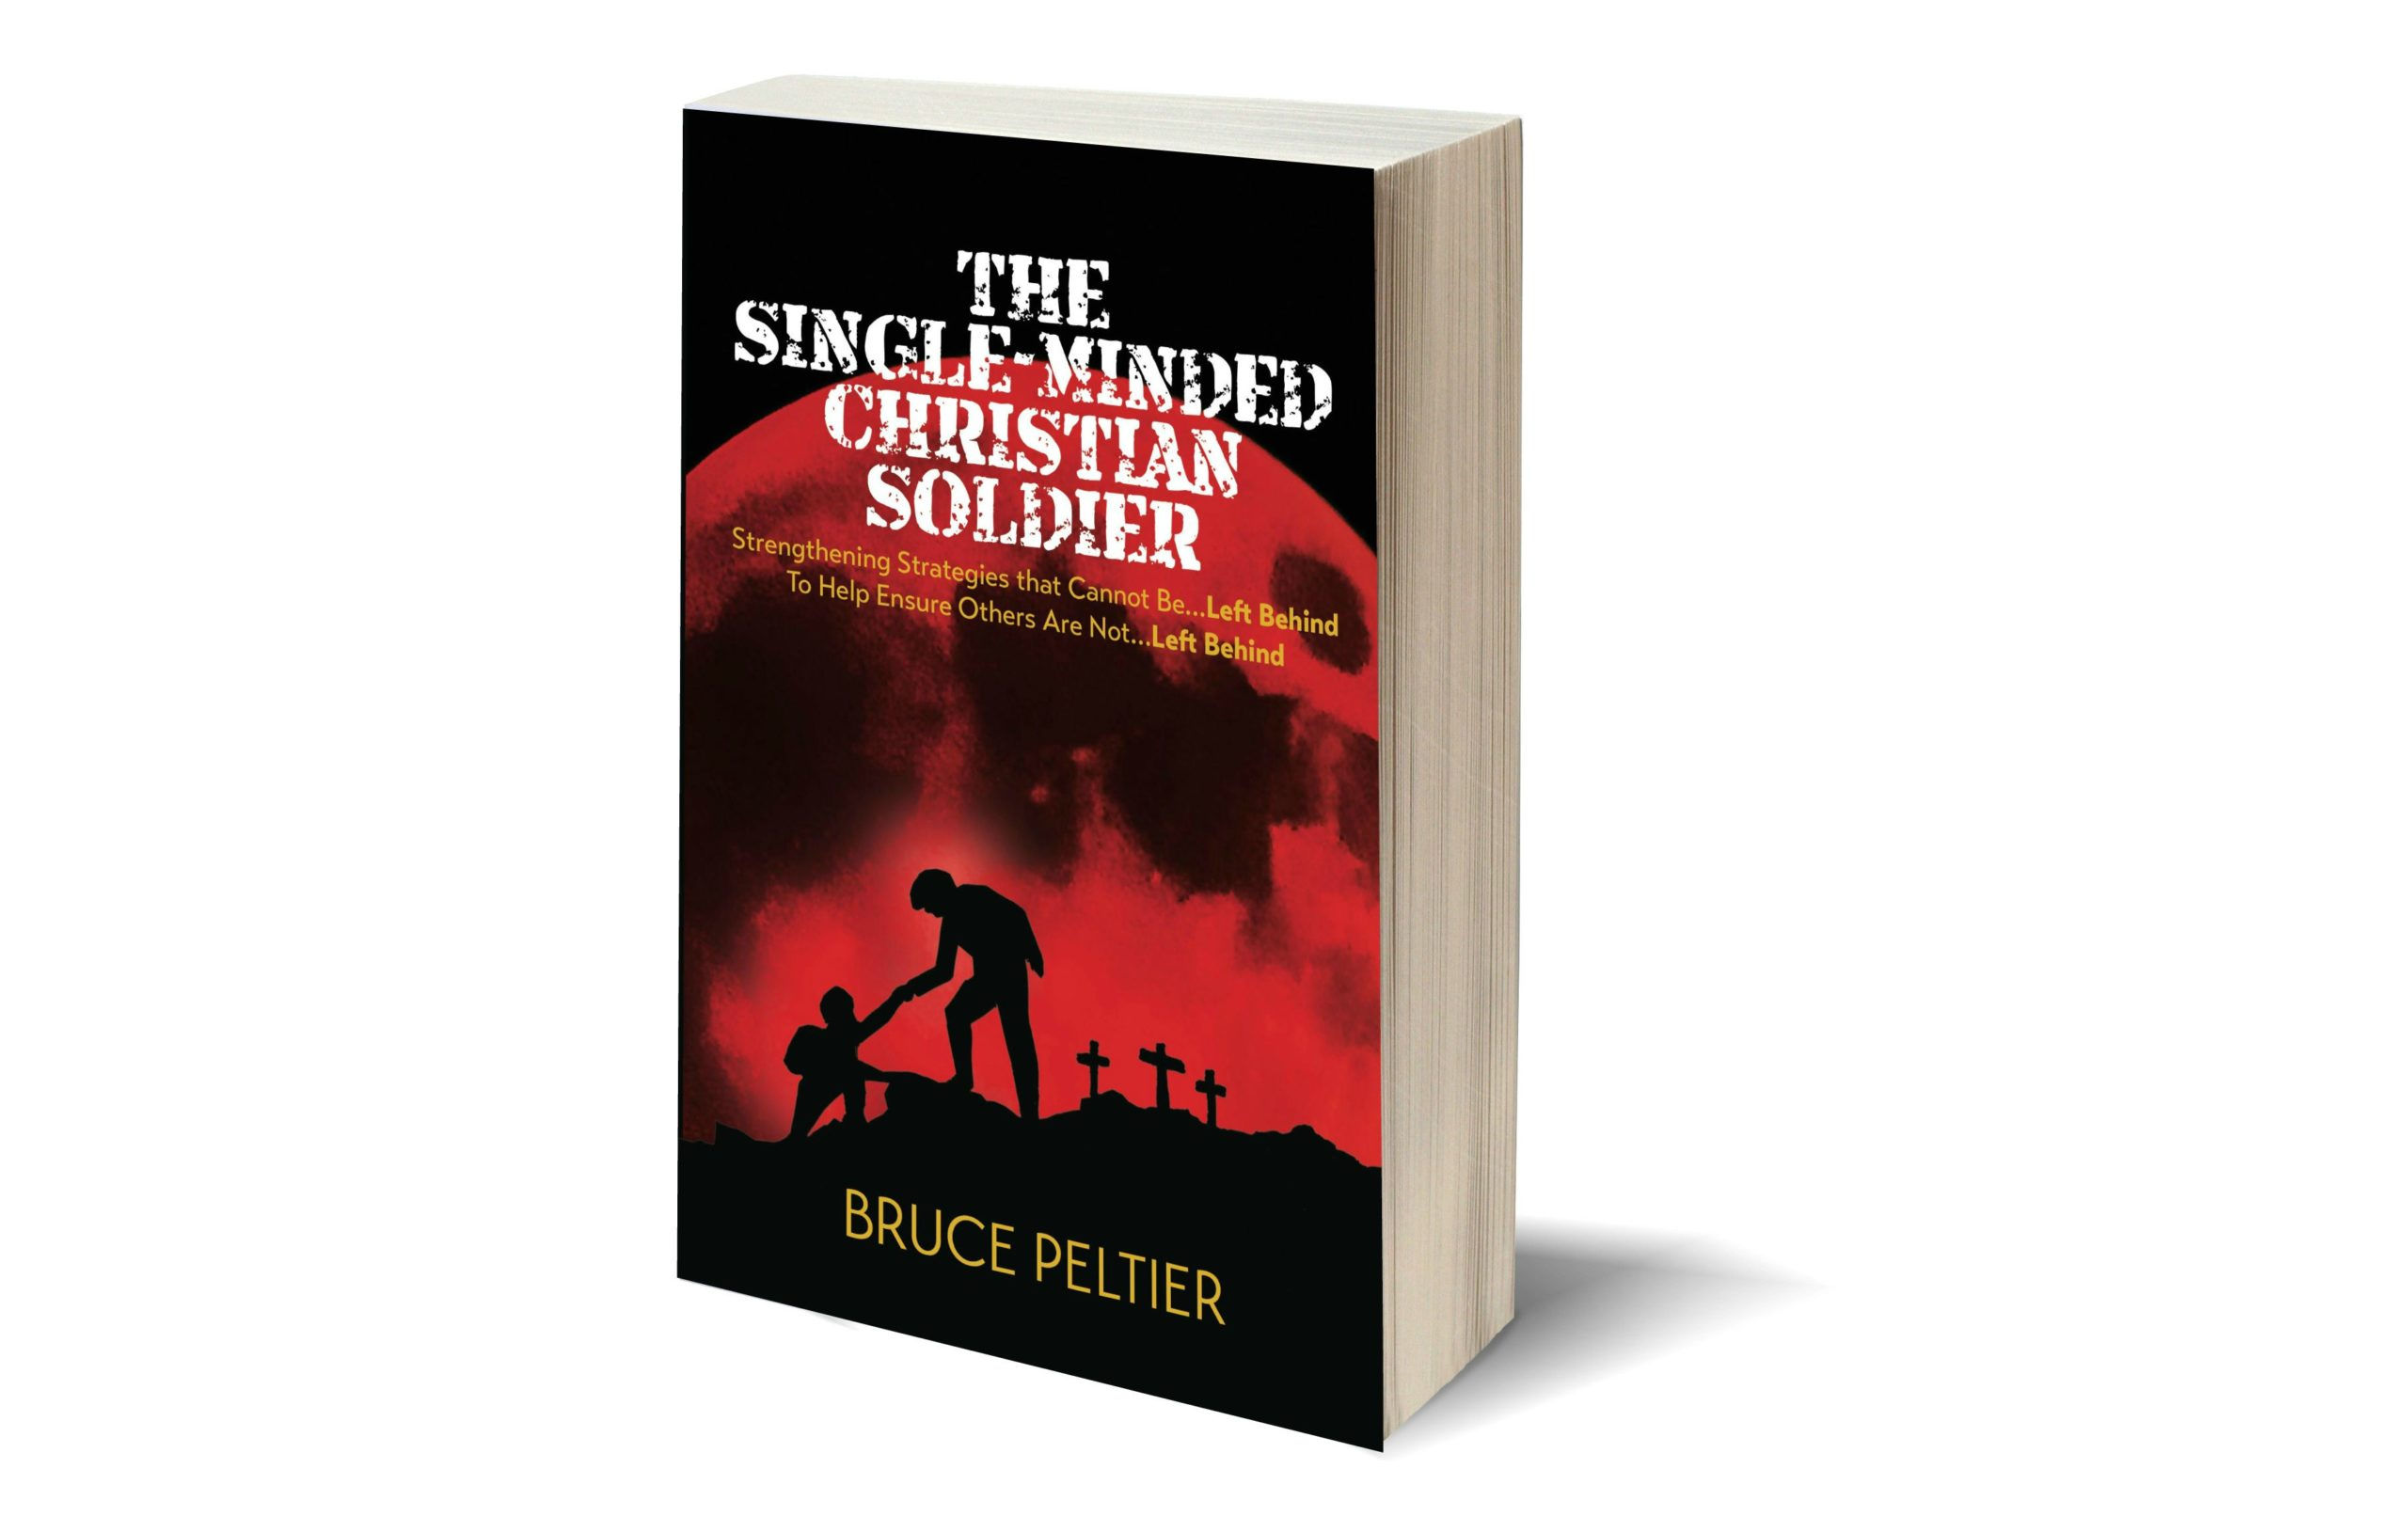 Selah Press Releases The Single-Minded Christian Soldier